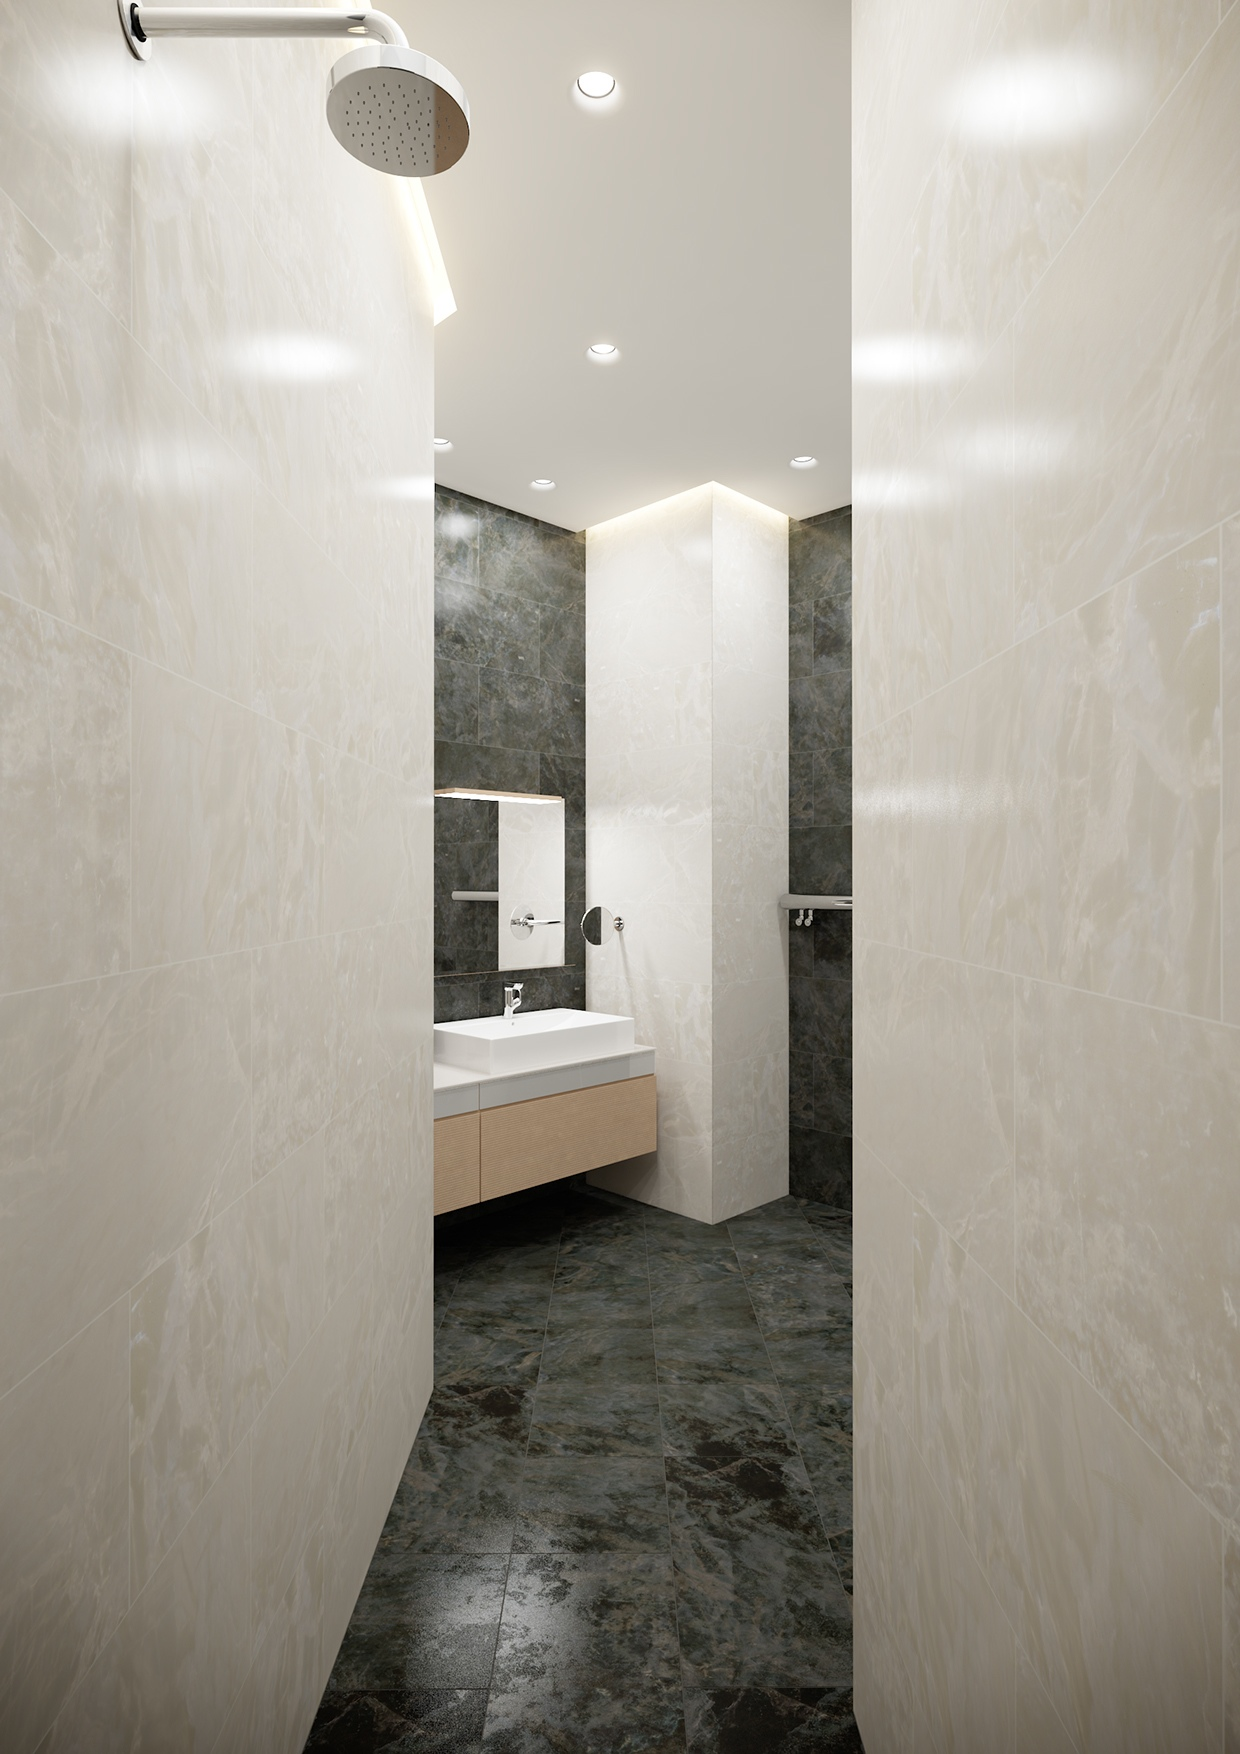 Marble Bathroom Decor - A stylish apartment with classic design features